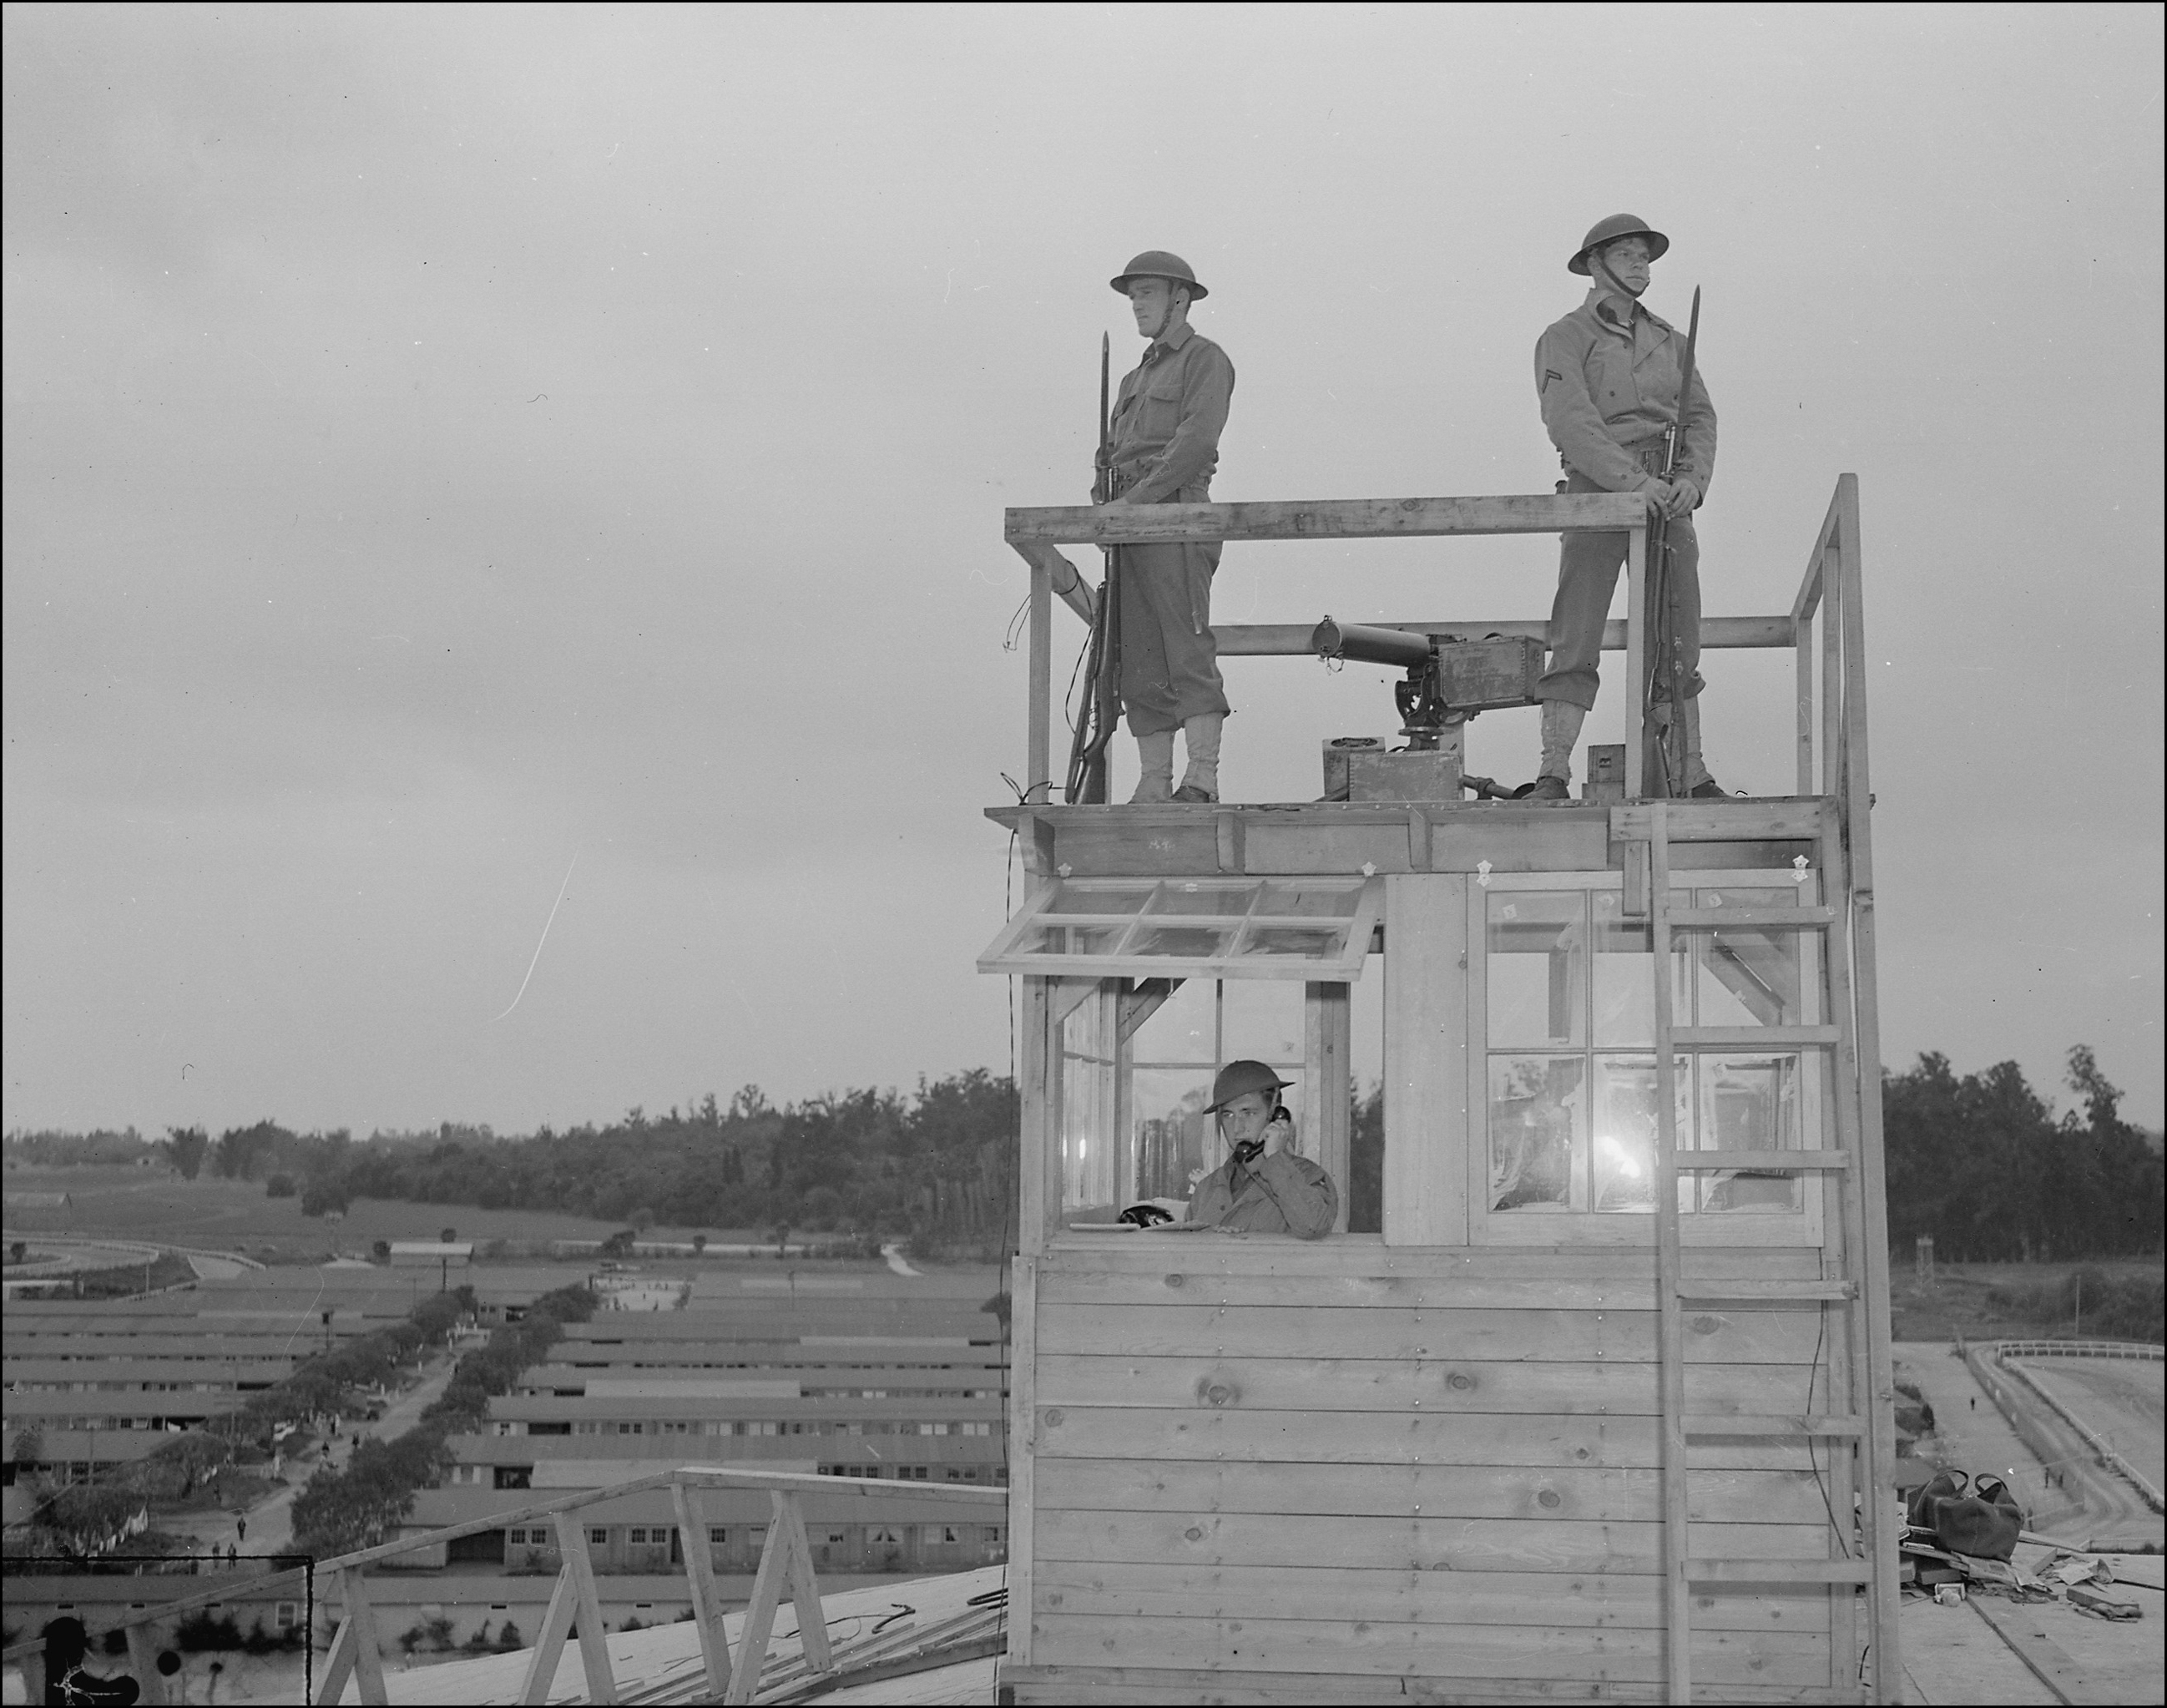 Arcadia, California. Military police on duty in watch-tower at Santa Anita Park assembly center, 1942, Courtesy of the National Archives and Records Administration